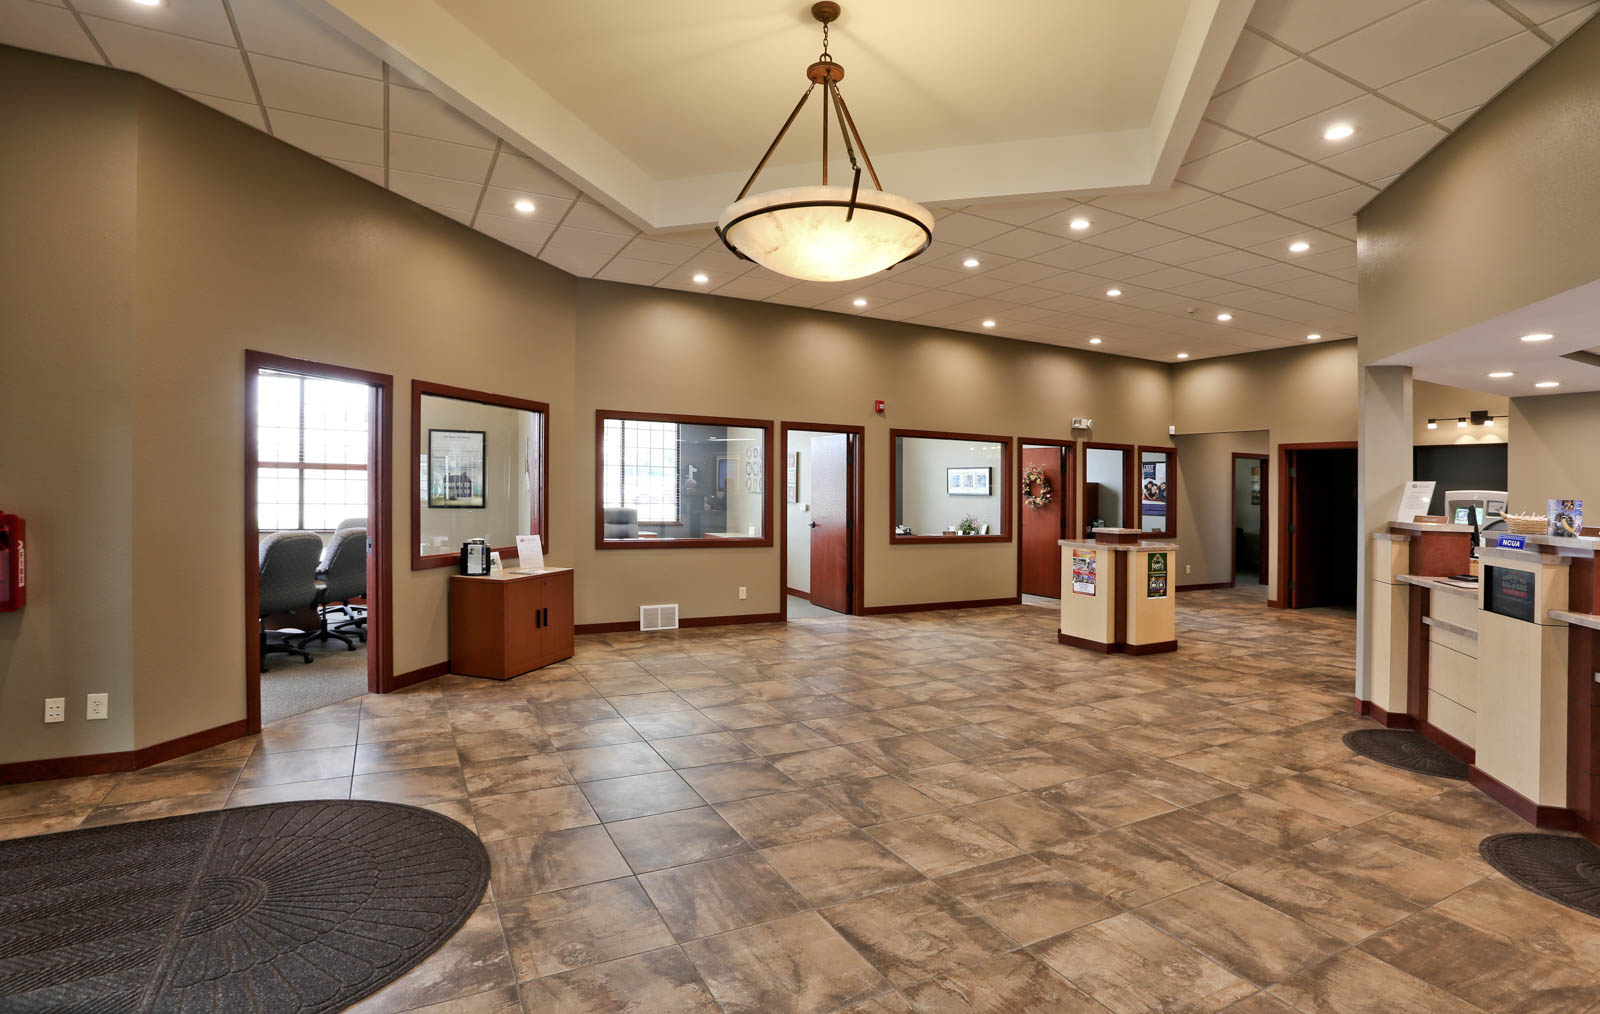 First Credit Union Interior View